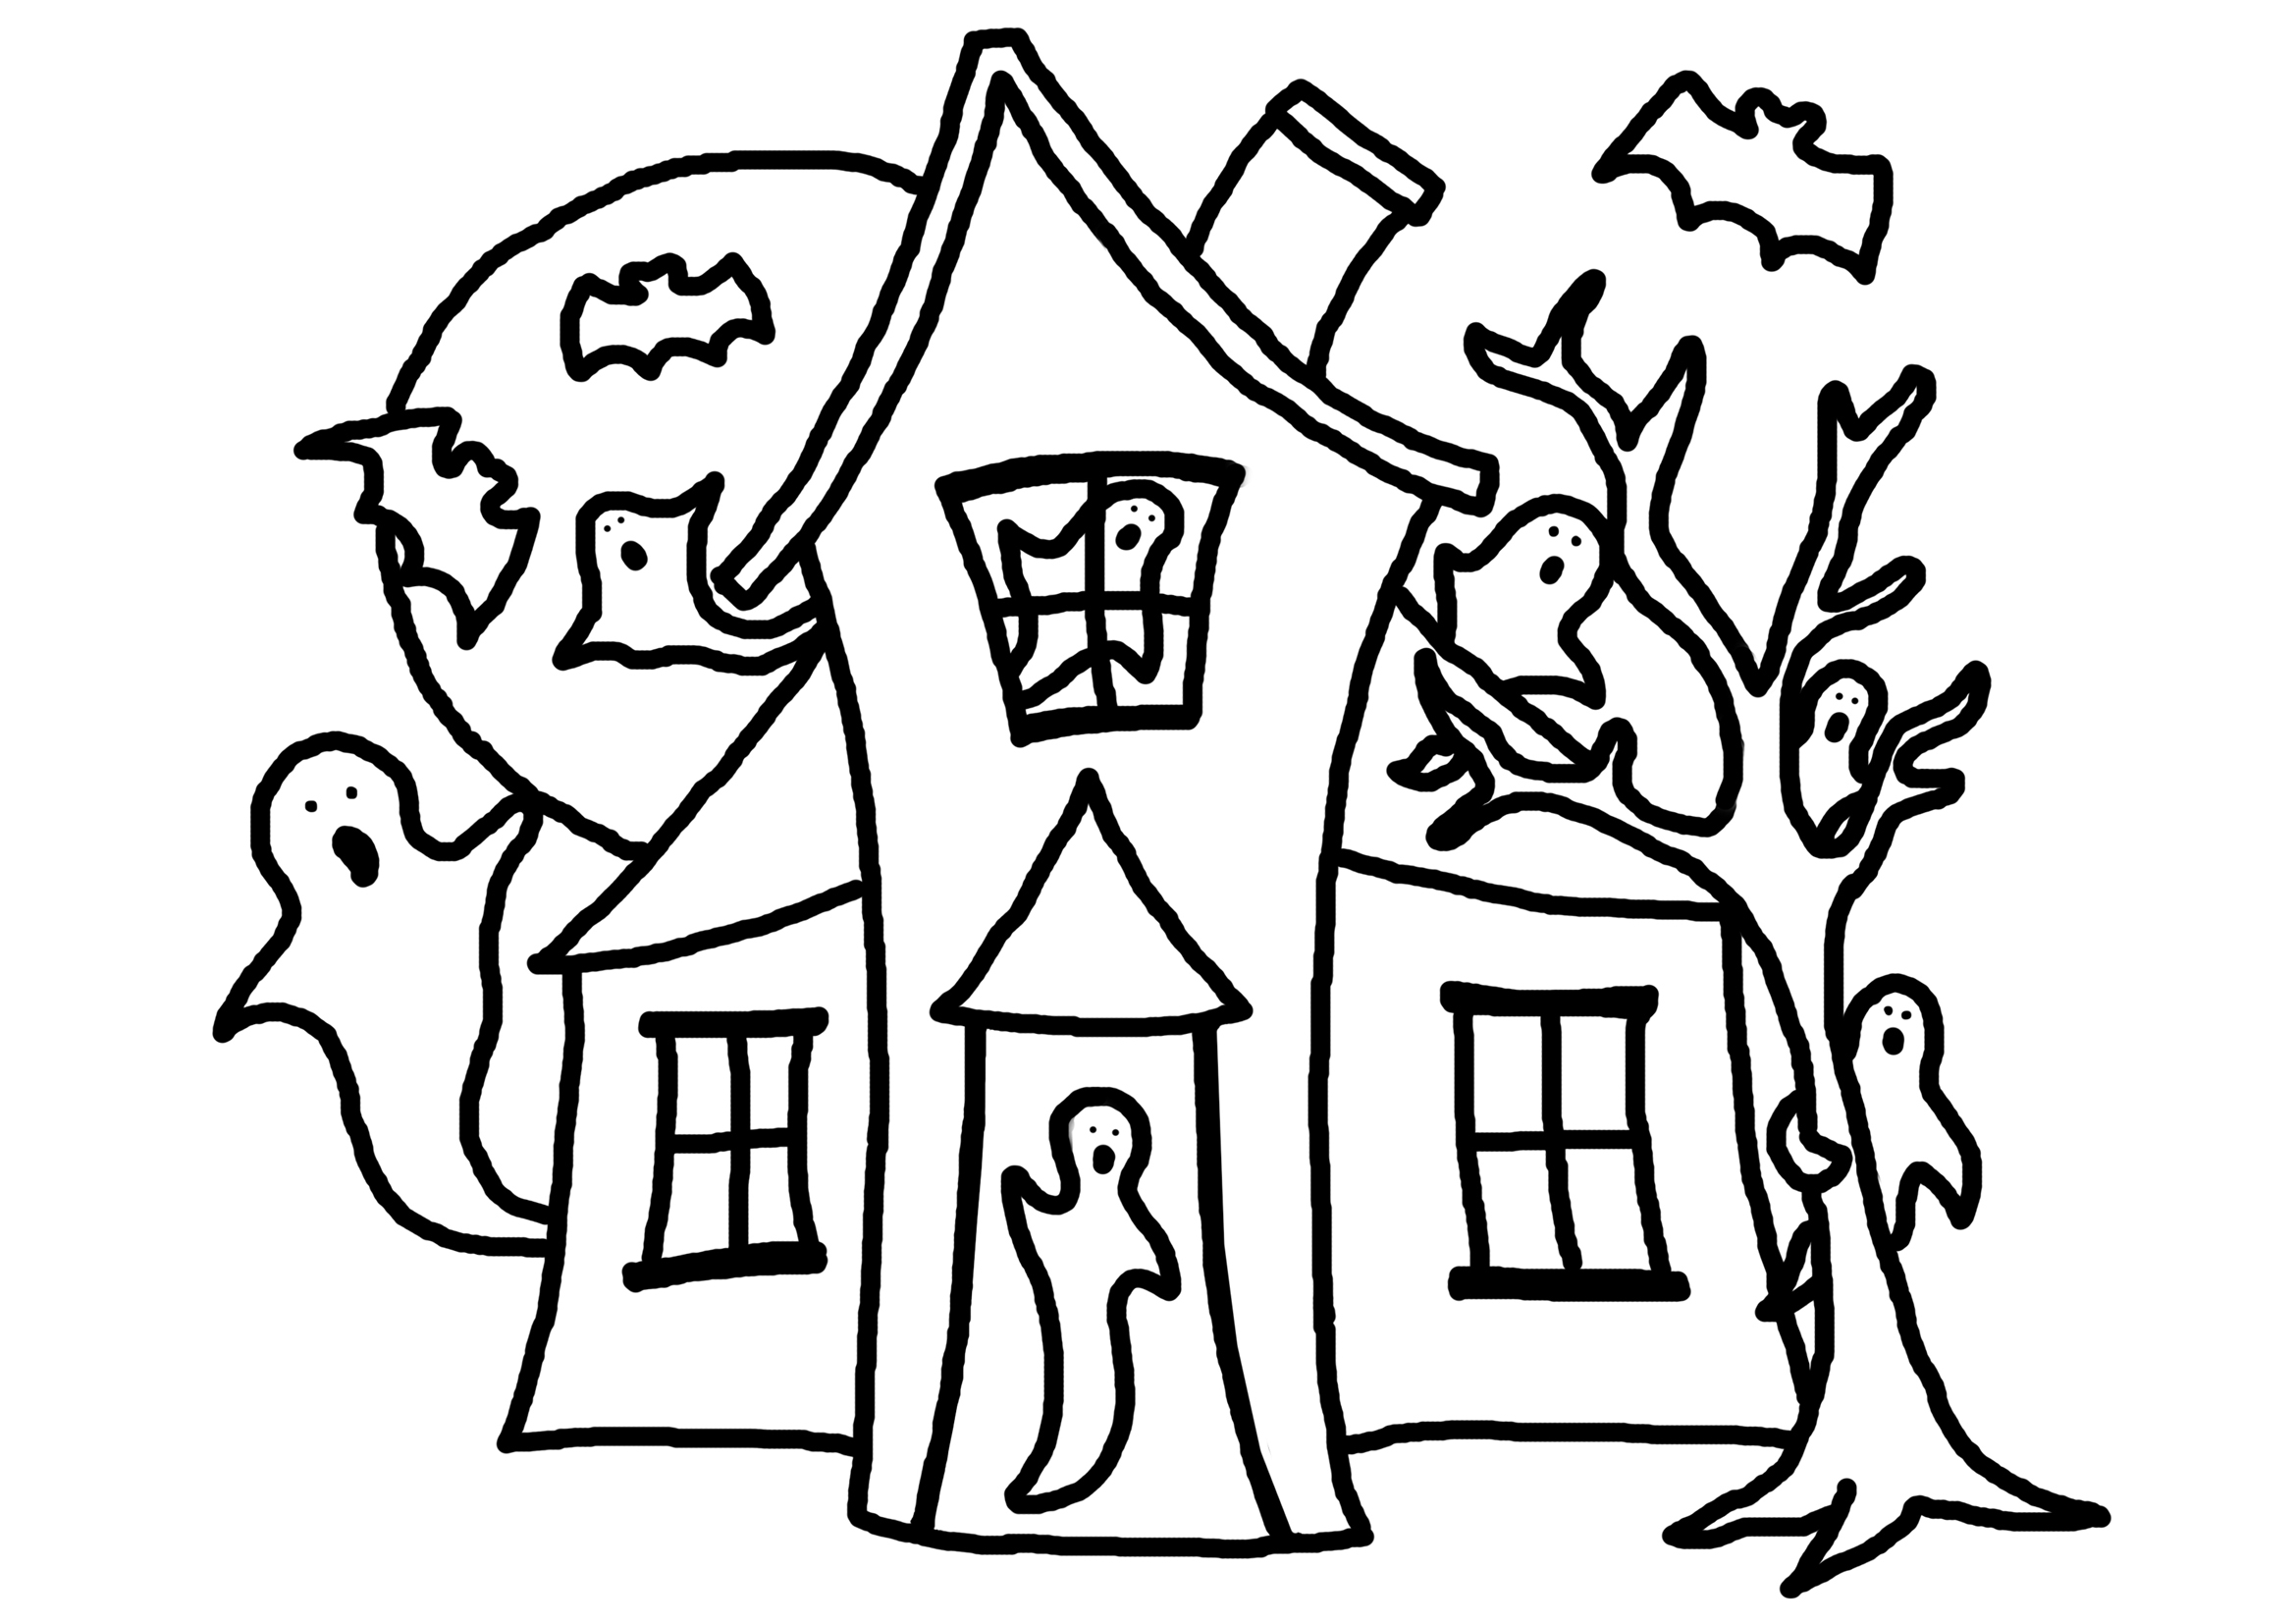 haunted house coloring pages haunted house coloring pages coloring pages to download pages coloring house haunted